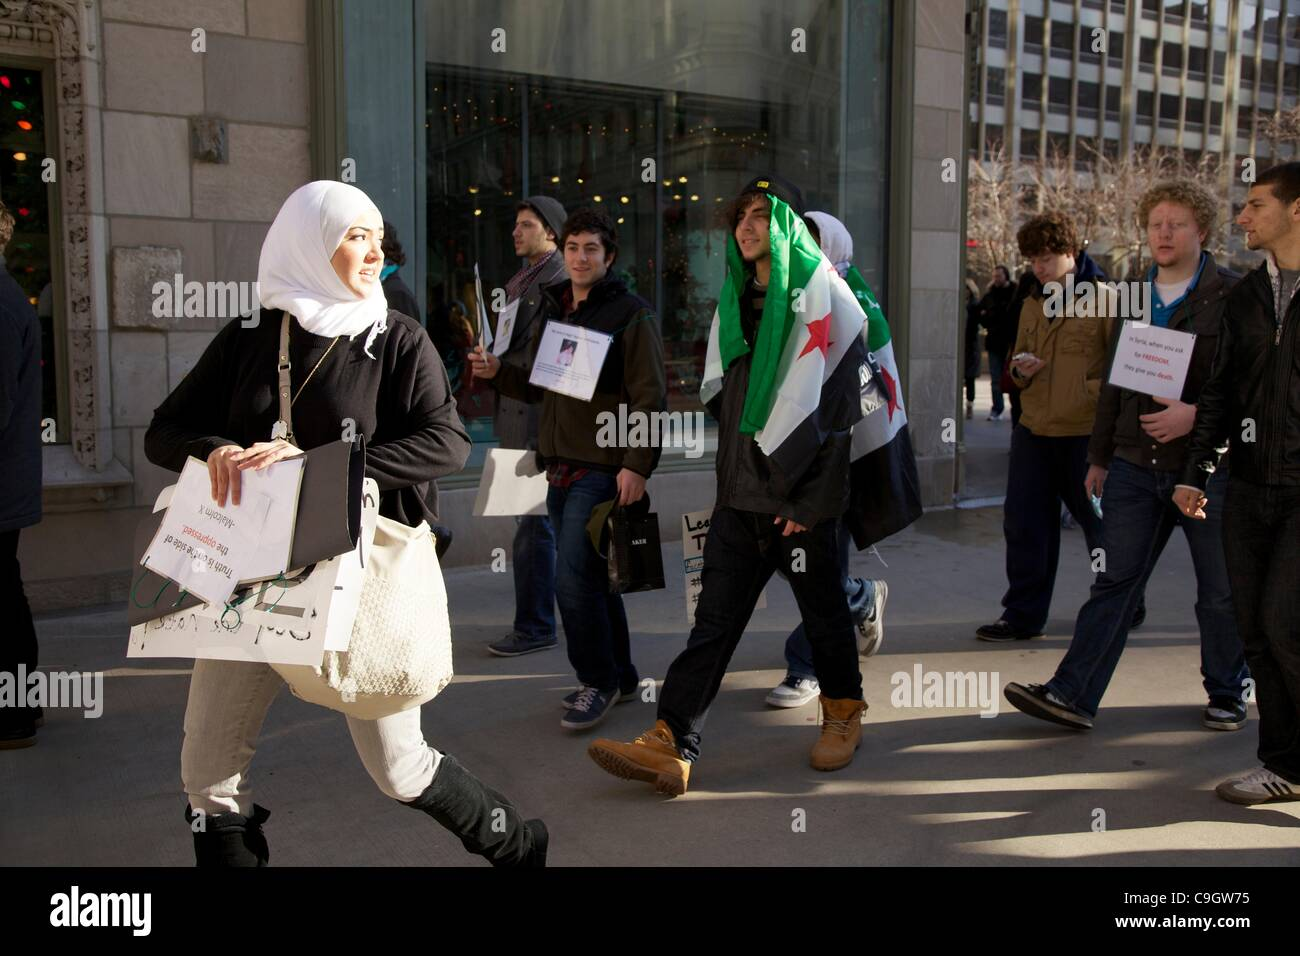 Chicago, USA, 29/12/2011. Protesters march past Tribune Tower during anti-Syrian government protest. The demonstrators Stock Photo